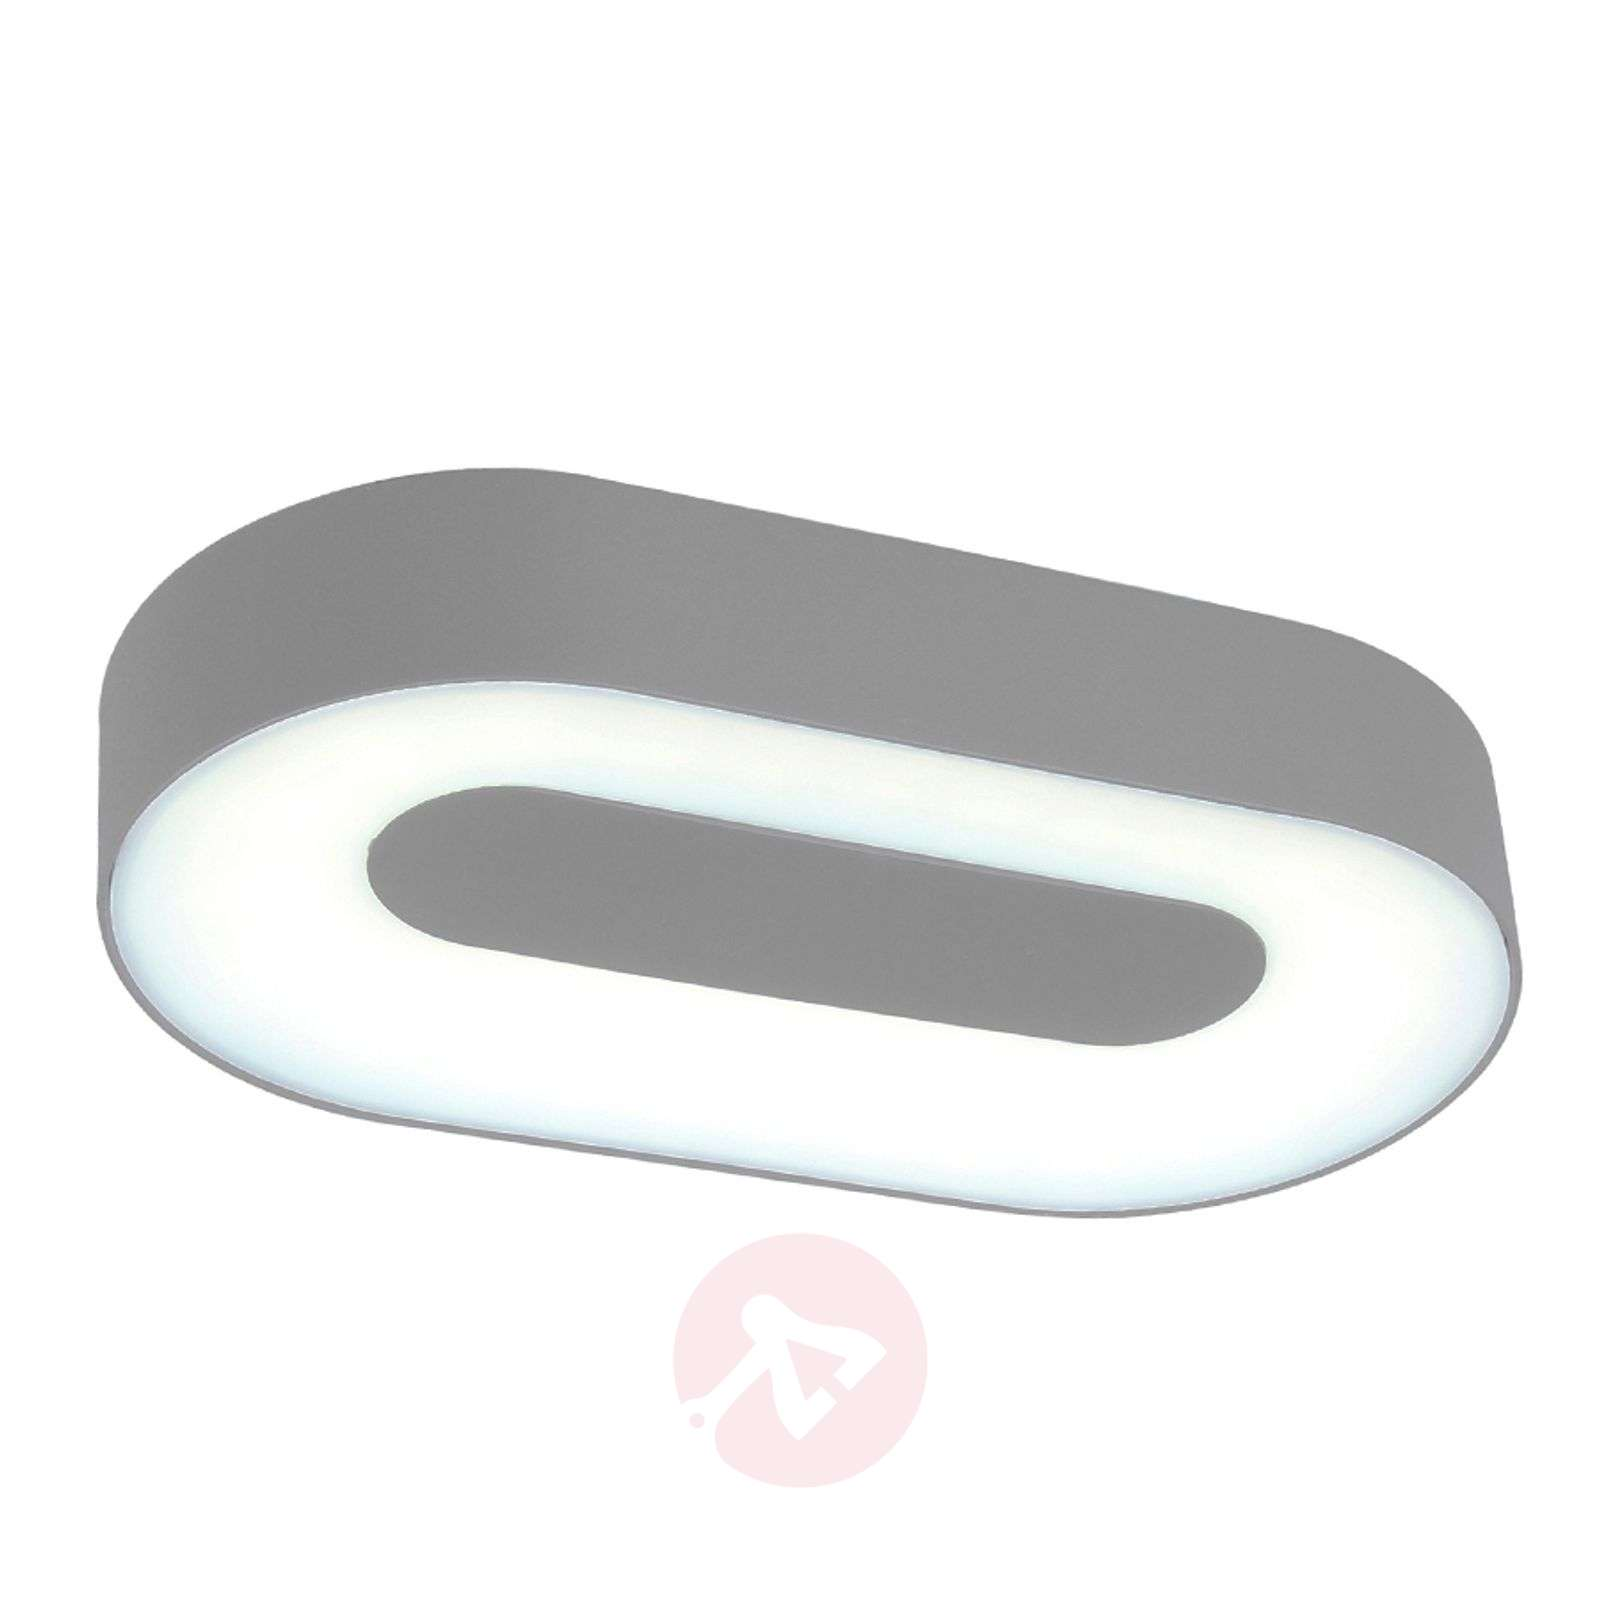 Oval Ublo LED wall light for outdoor areas-3006232-05